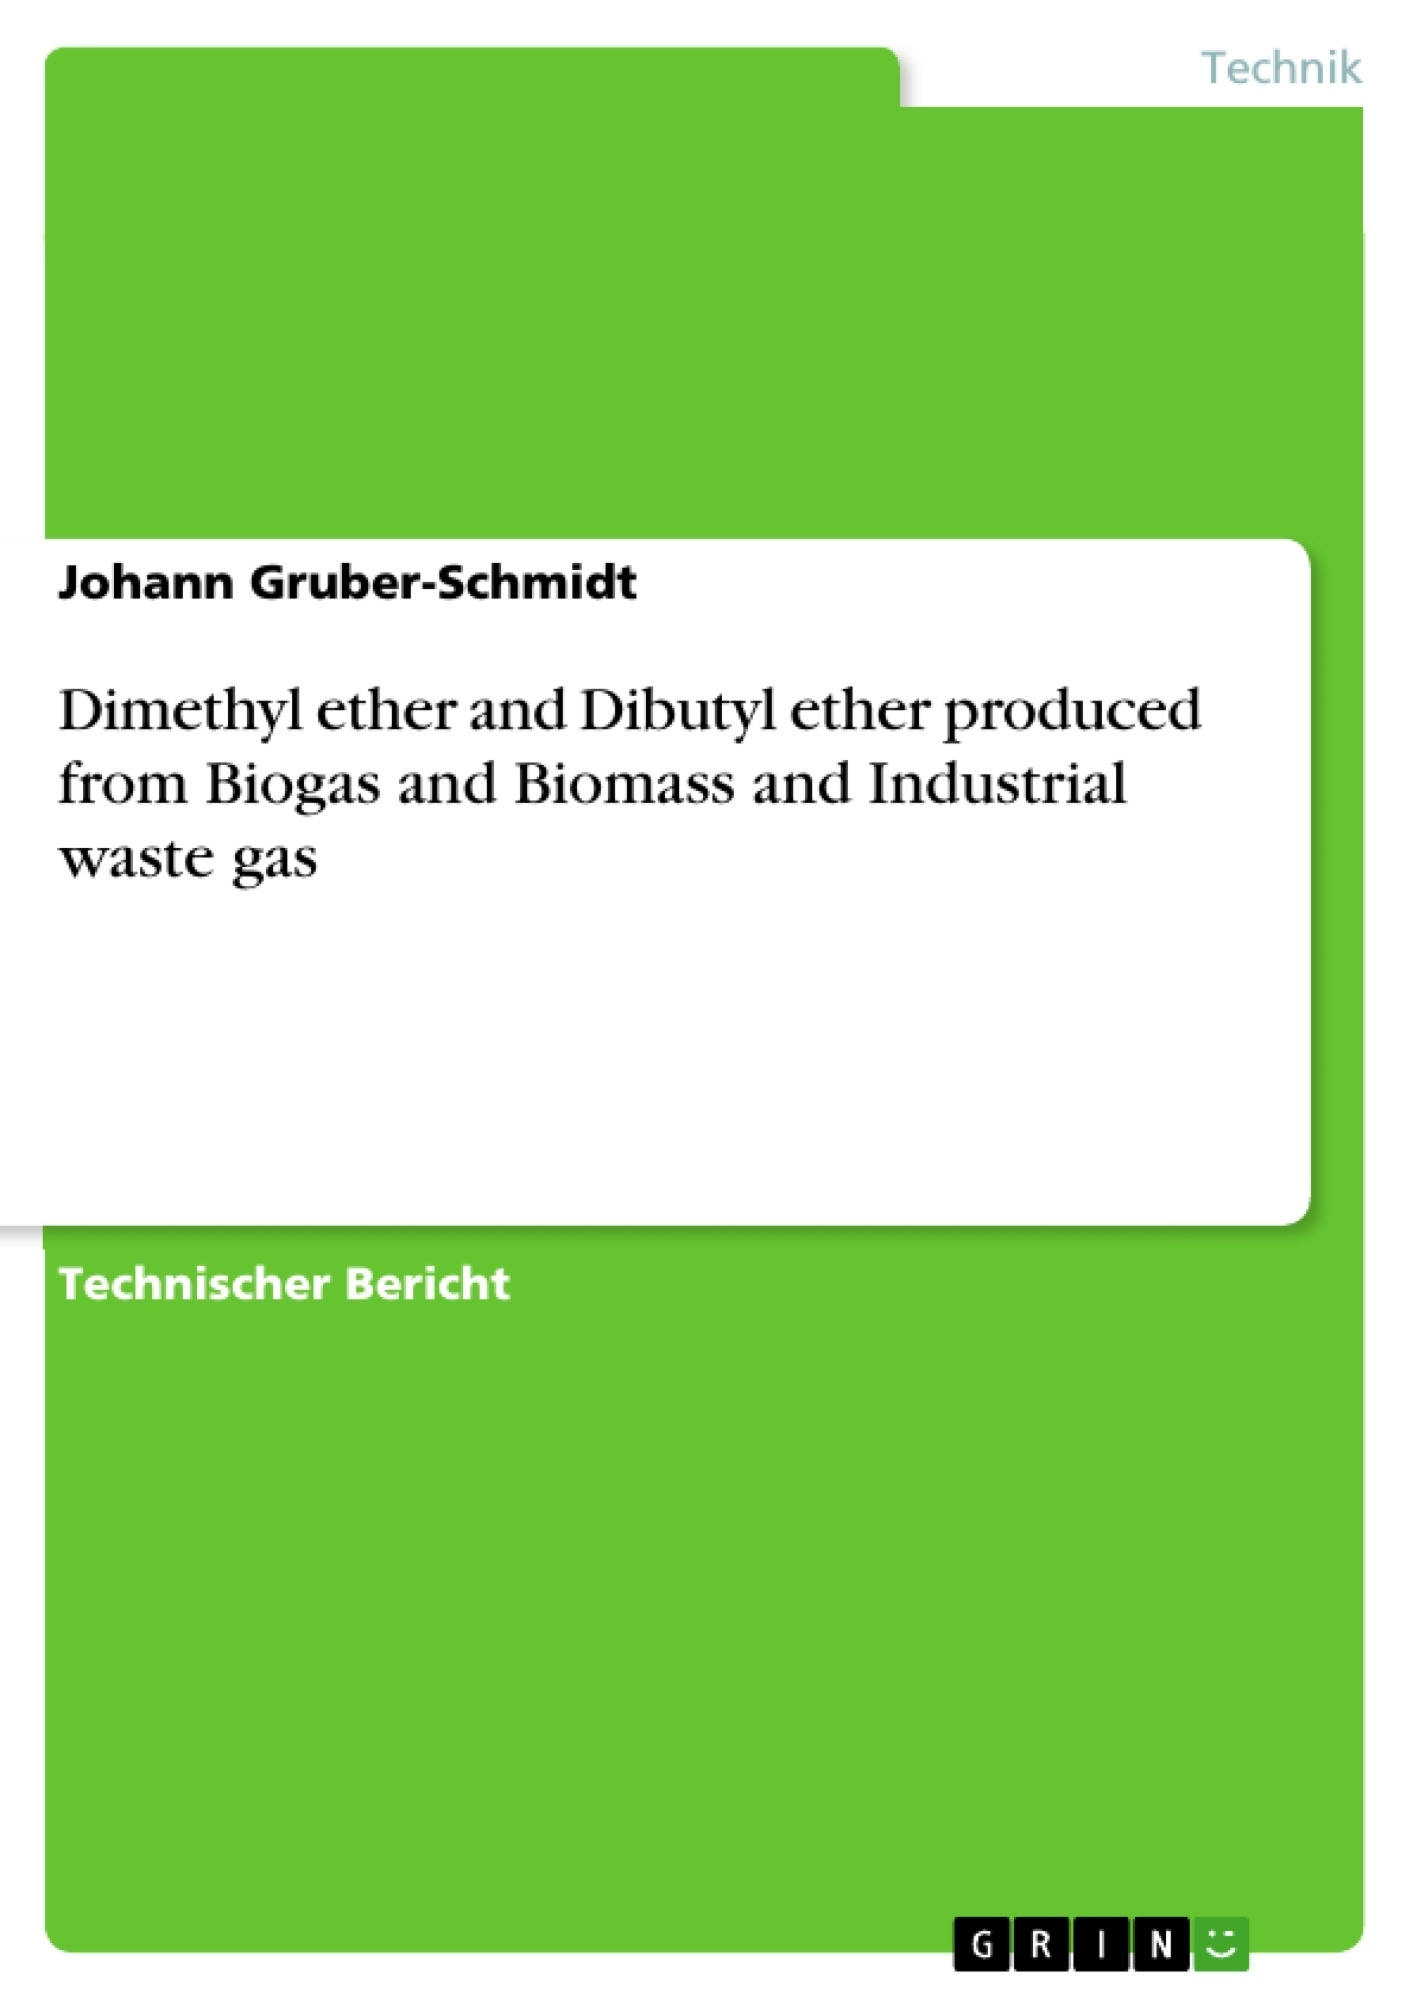 Titel: Dimethyl ether and Dibutyl ether produced from Biogas and Biomass and Industrial waste gas